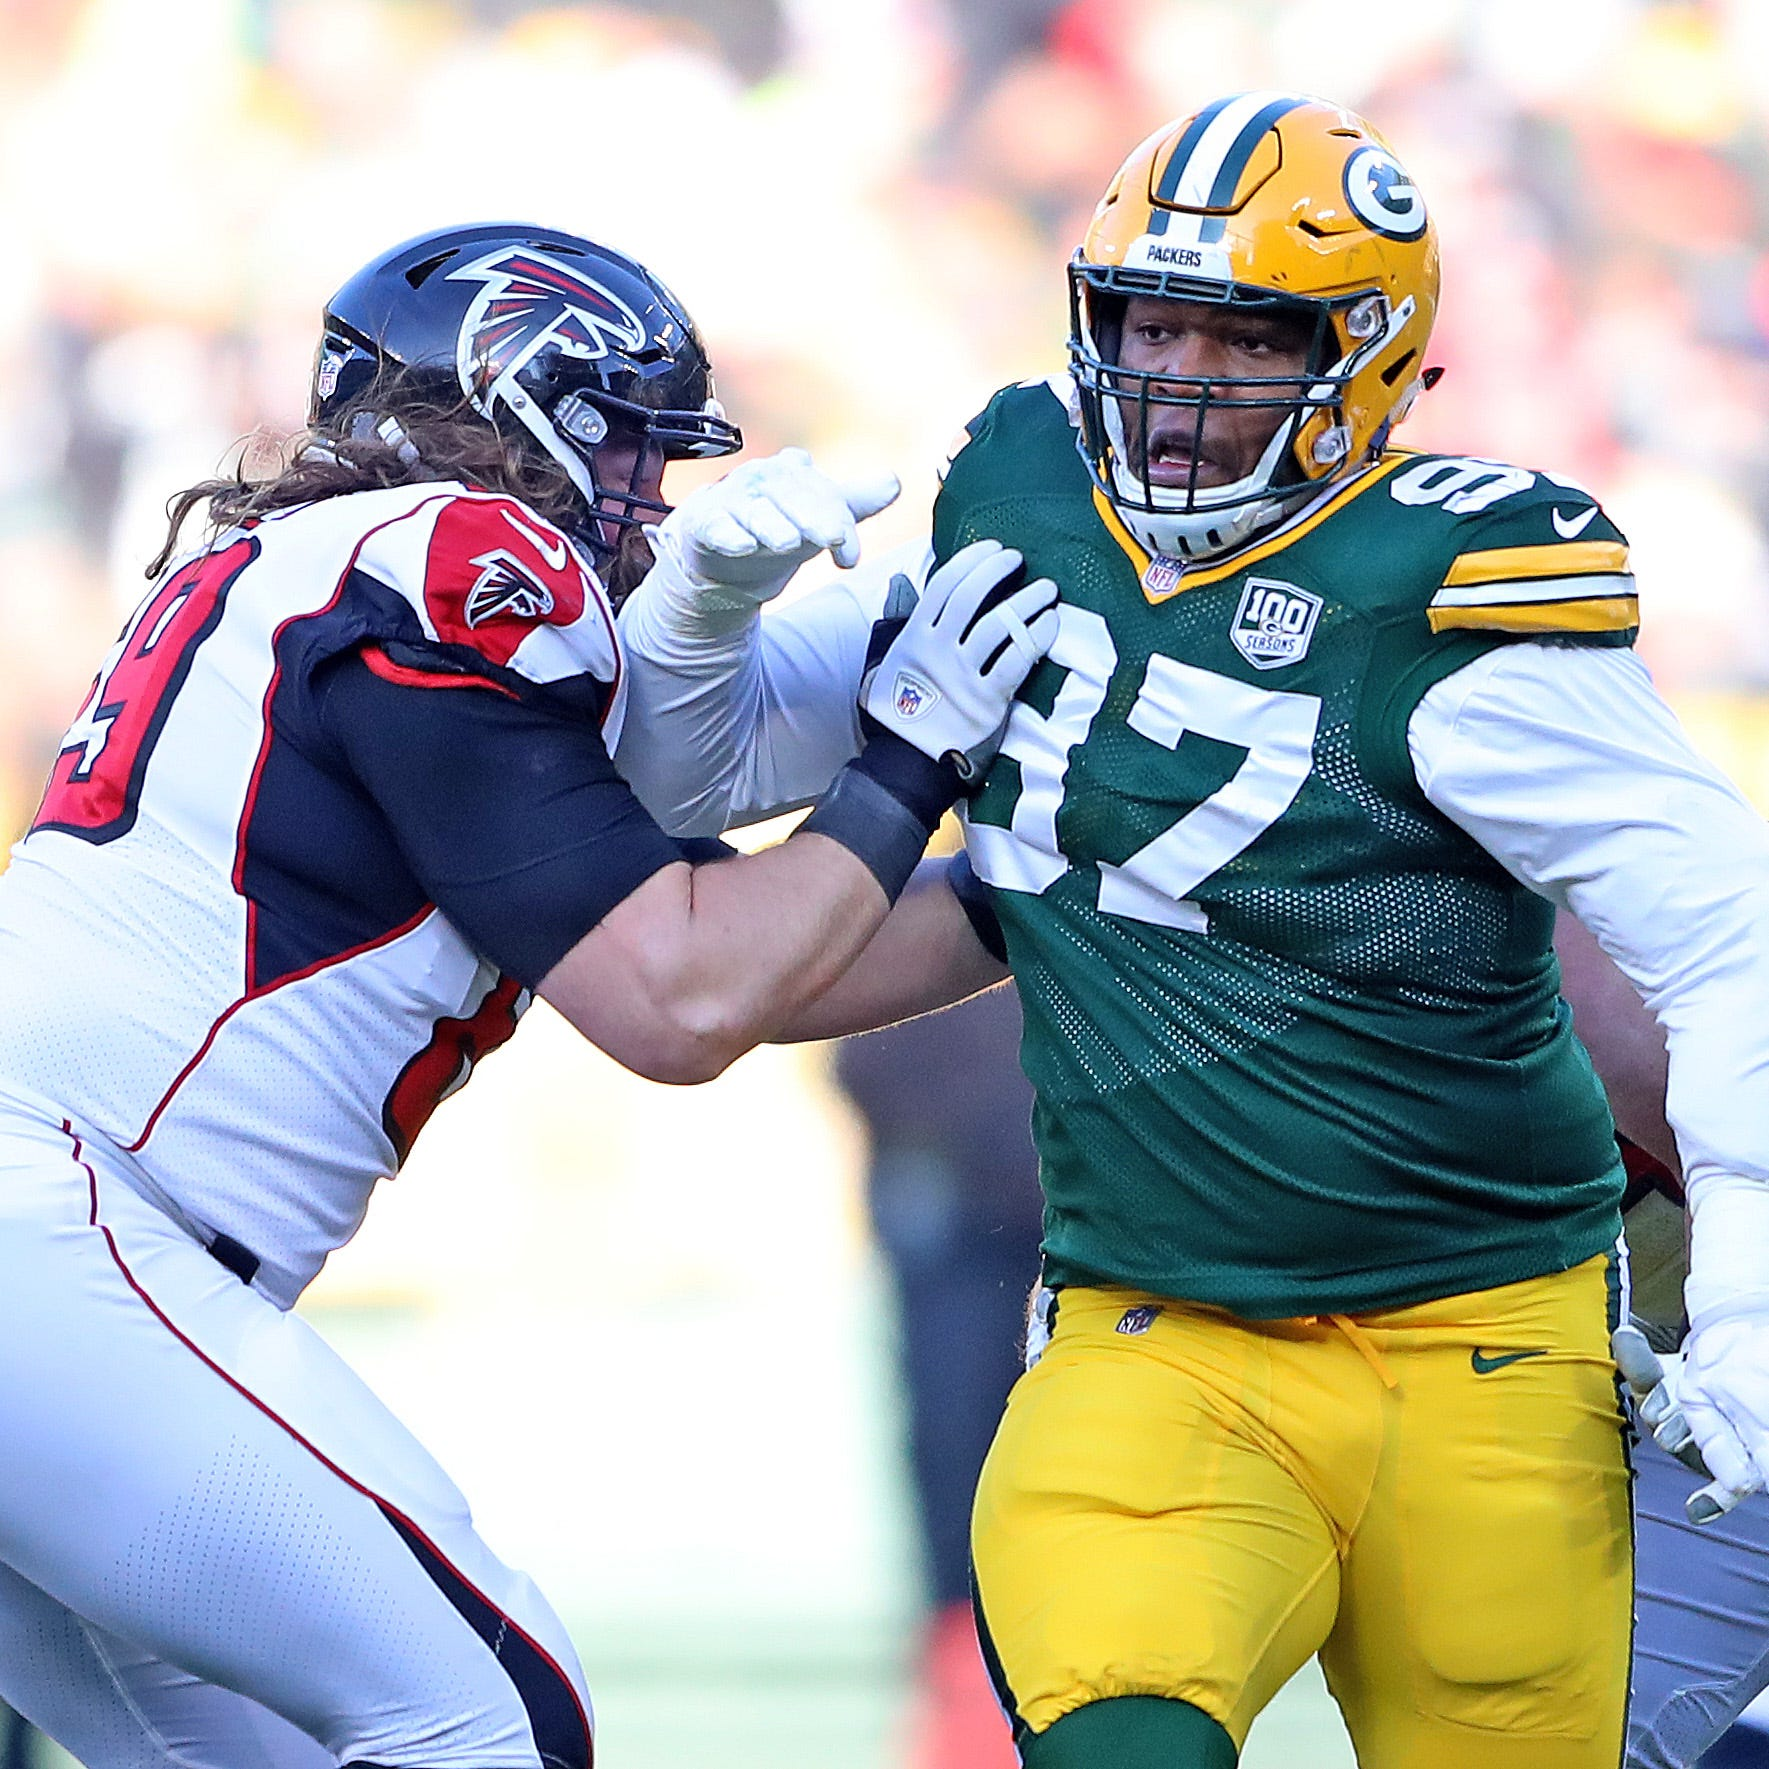 Packers defensive tackle Kenny Clark and right tackle Bryan Bulaga inactive against Bears